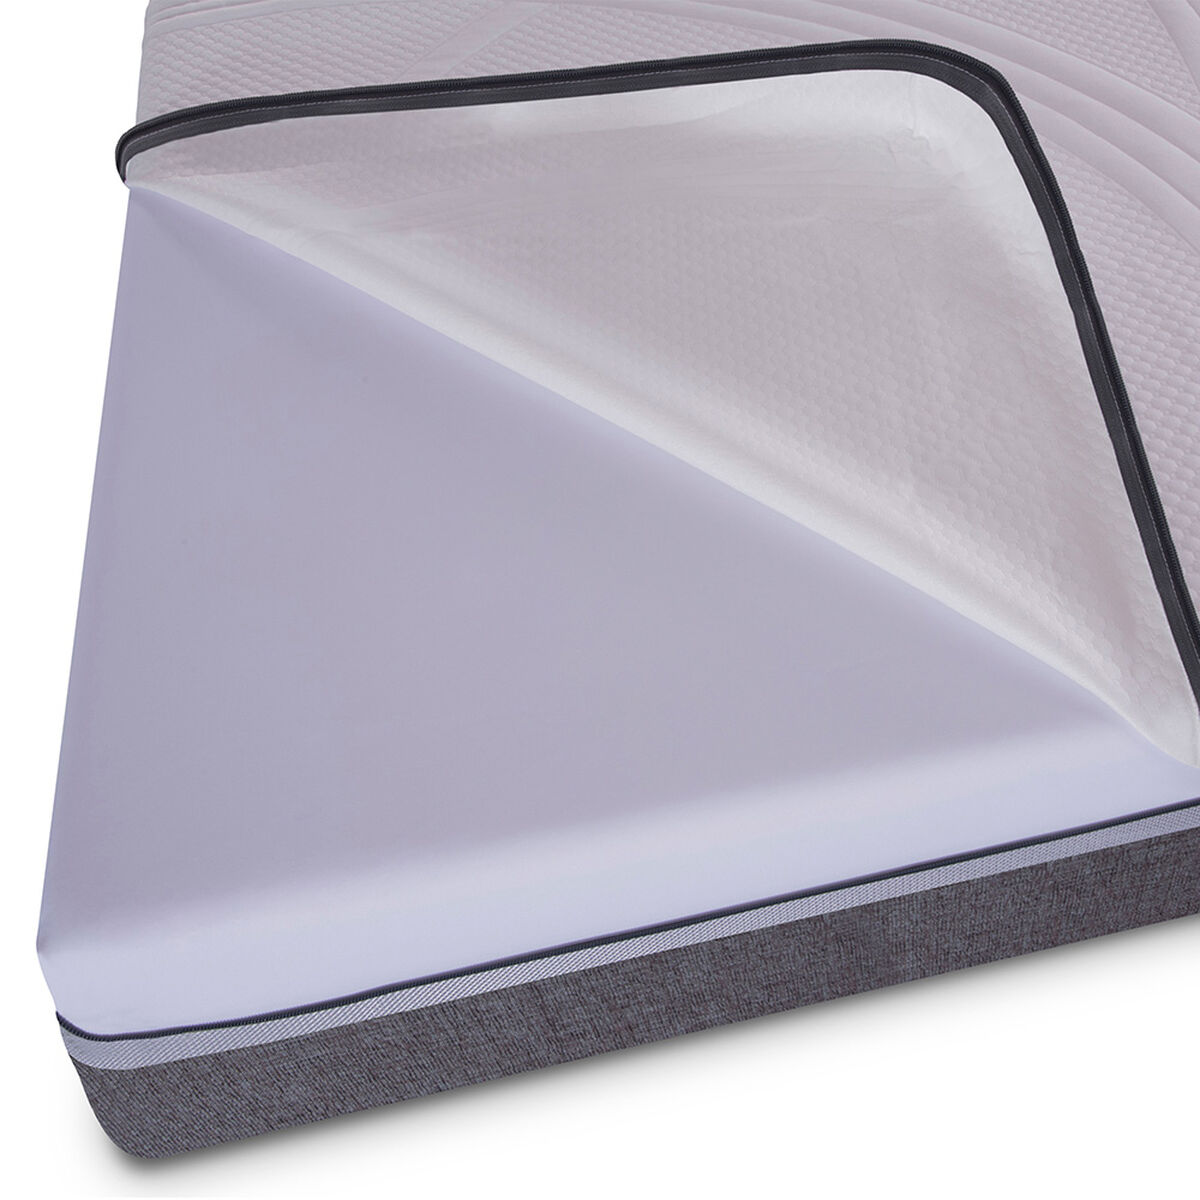 Box Spring 2 Plazas Div Ortopedic Advance + Textil